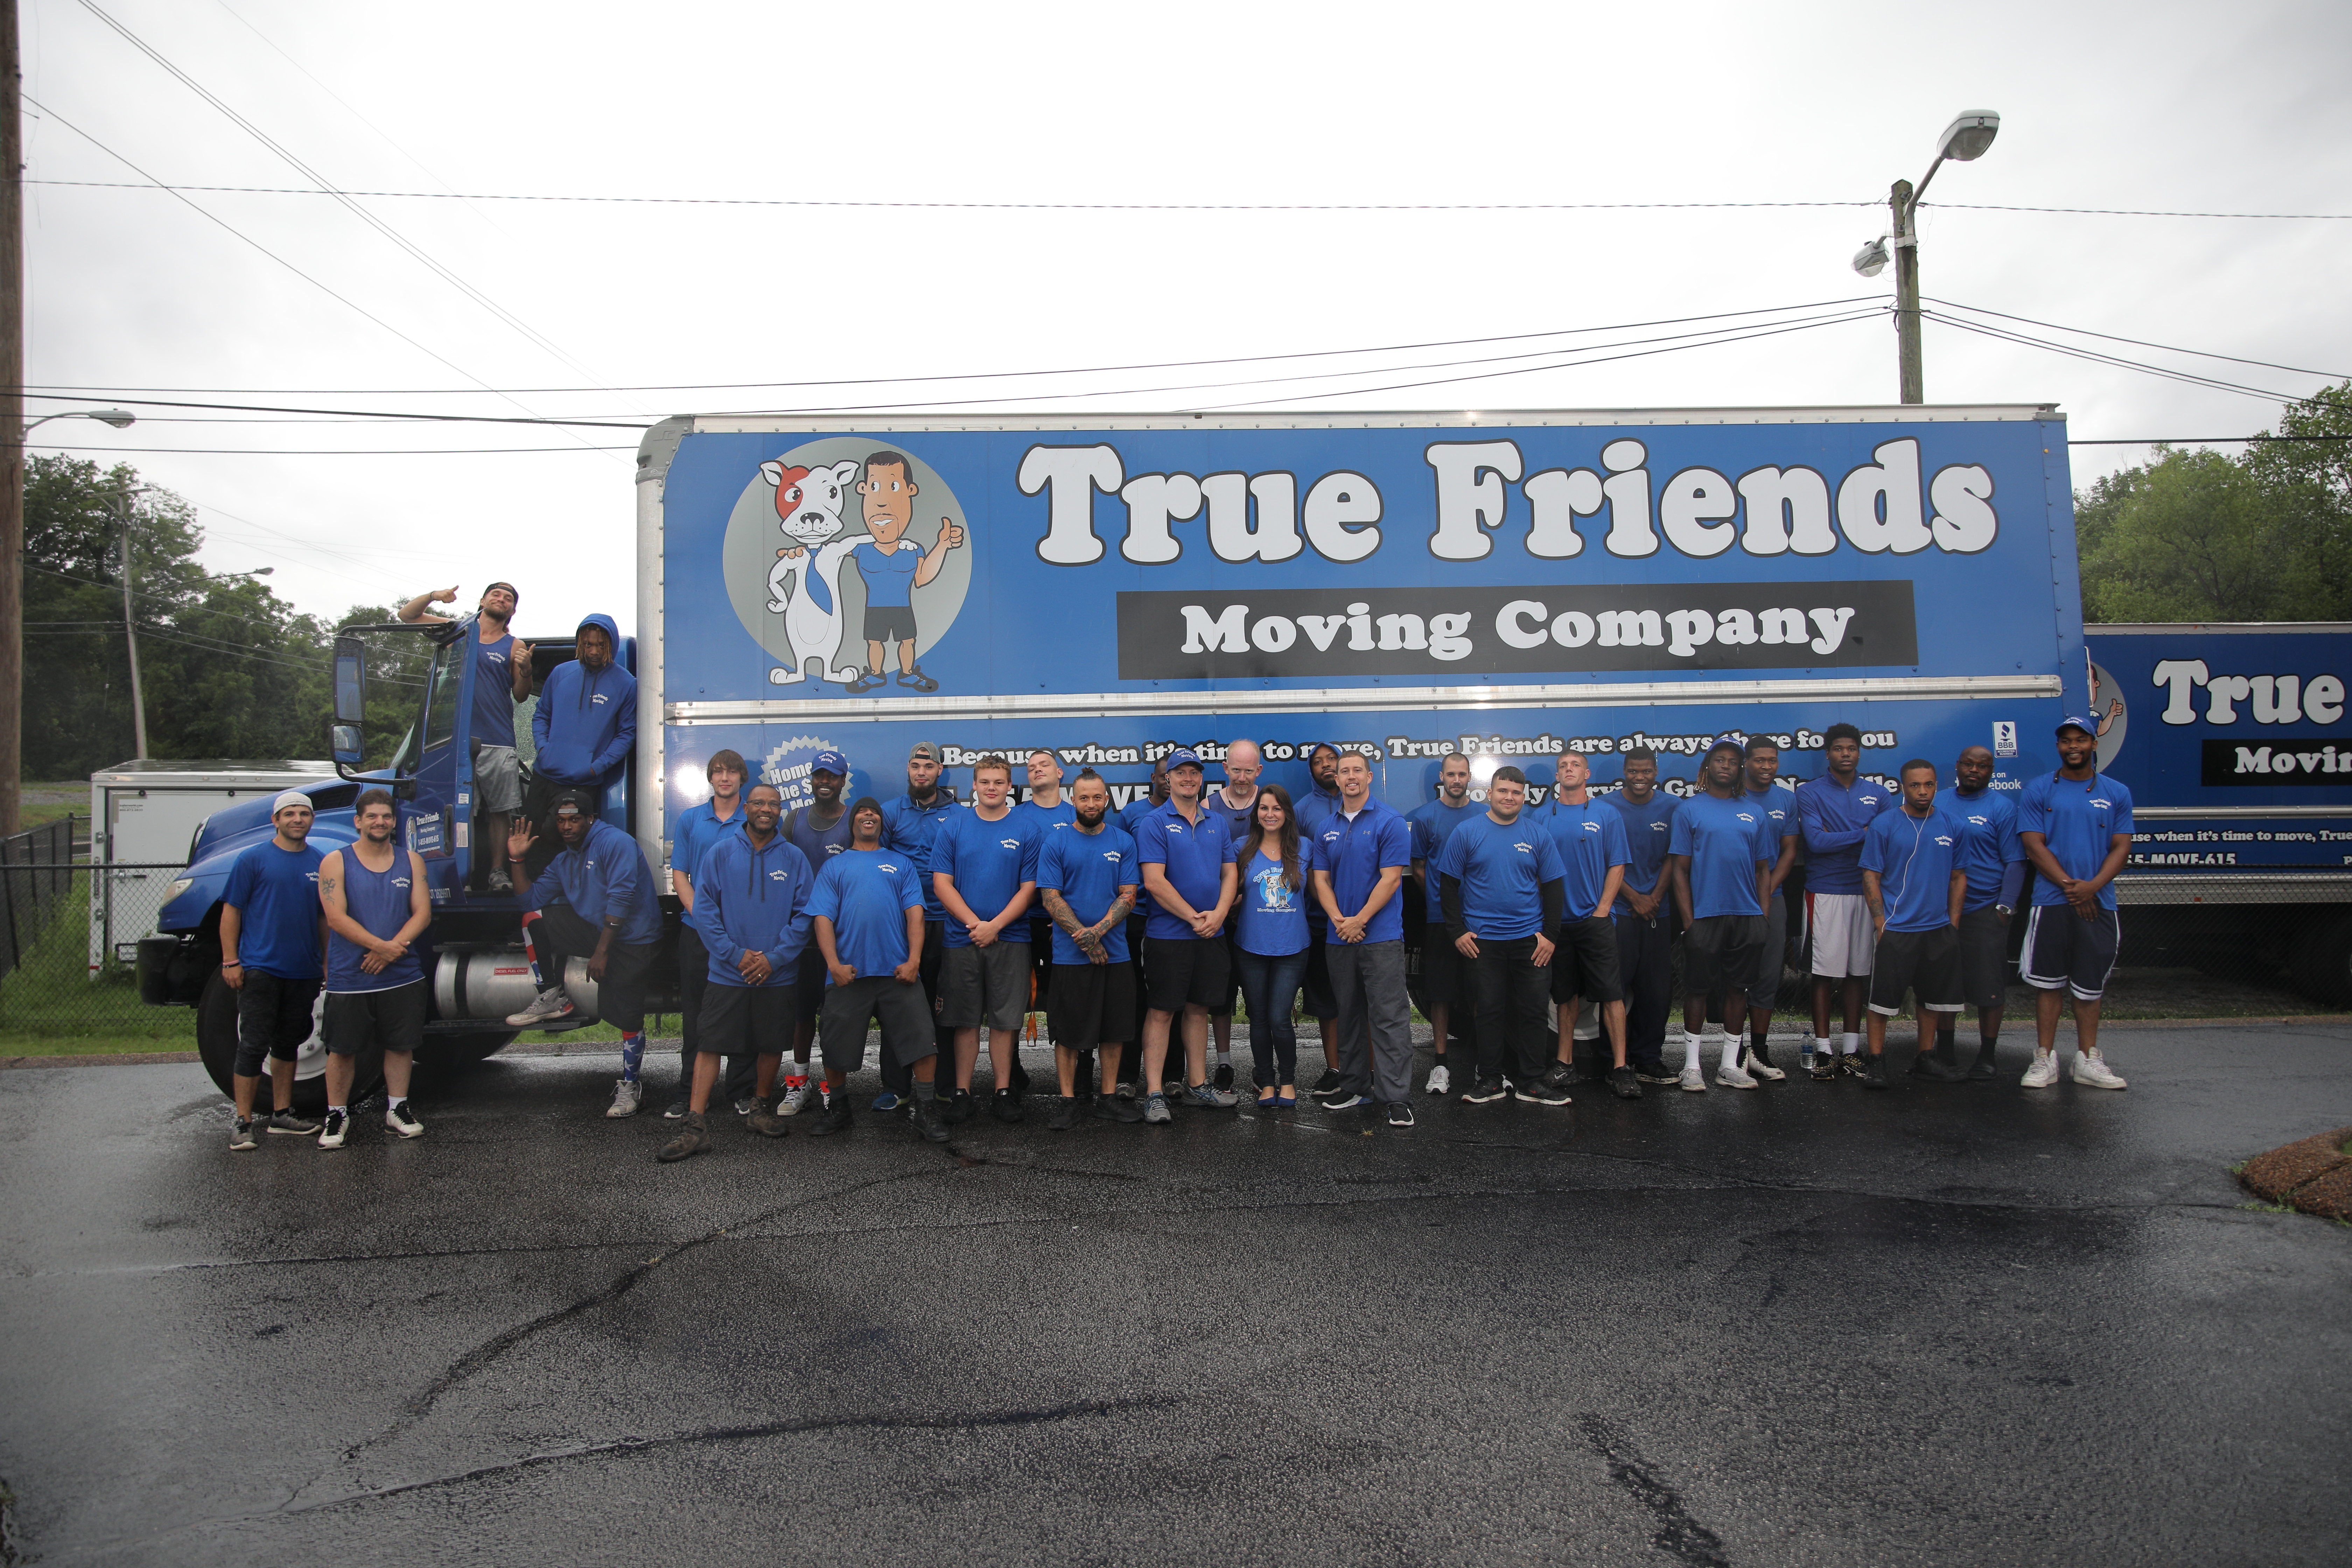 True Friends Moving Company reviews | Movers at 3606 Old Hickory Blvd - Nashville TN